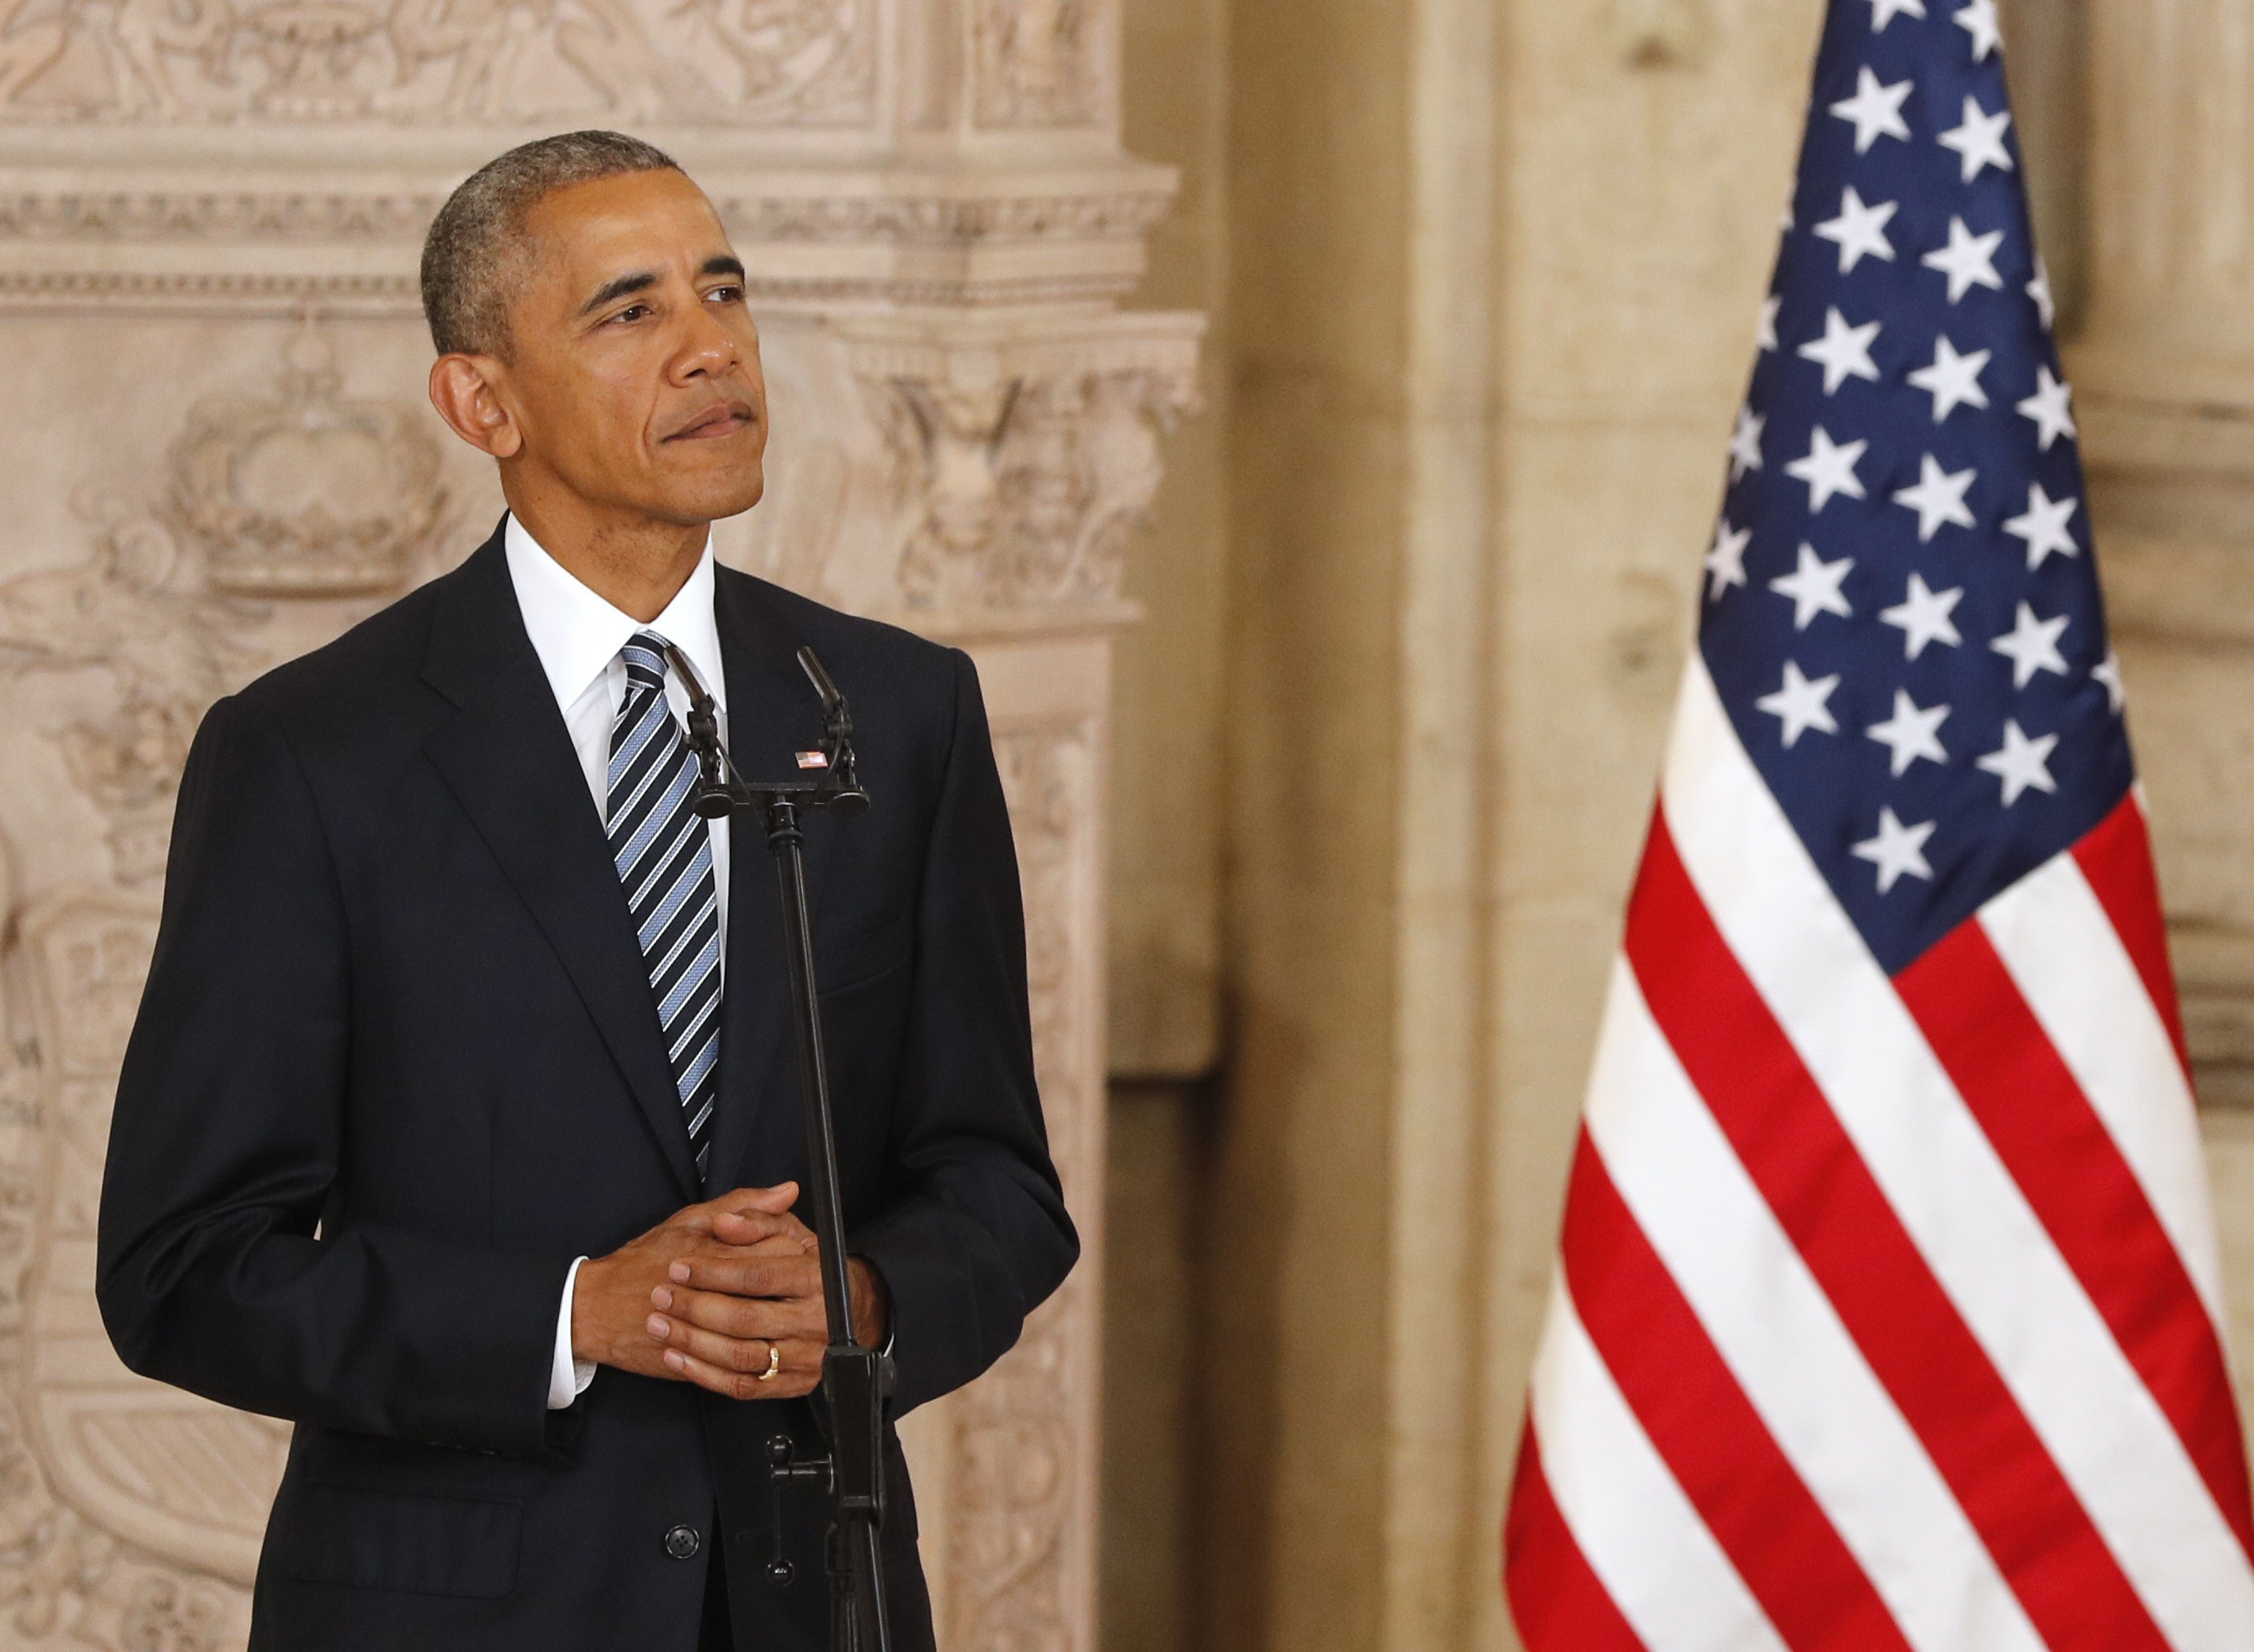 President Barack Obama delivers his speech at the Royal palace in Madrid, Spain, 10 July 2016.